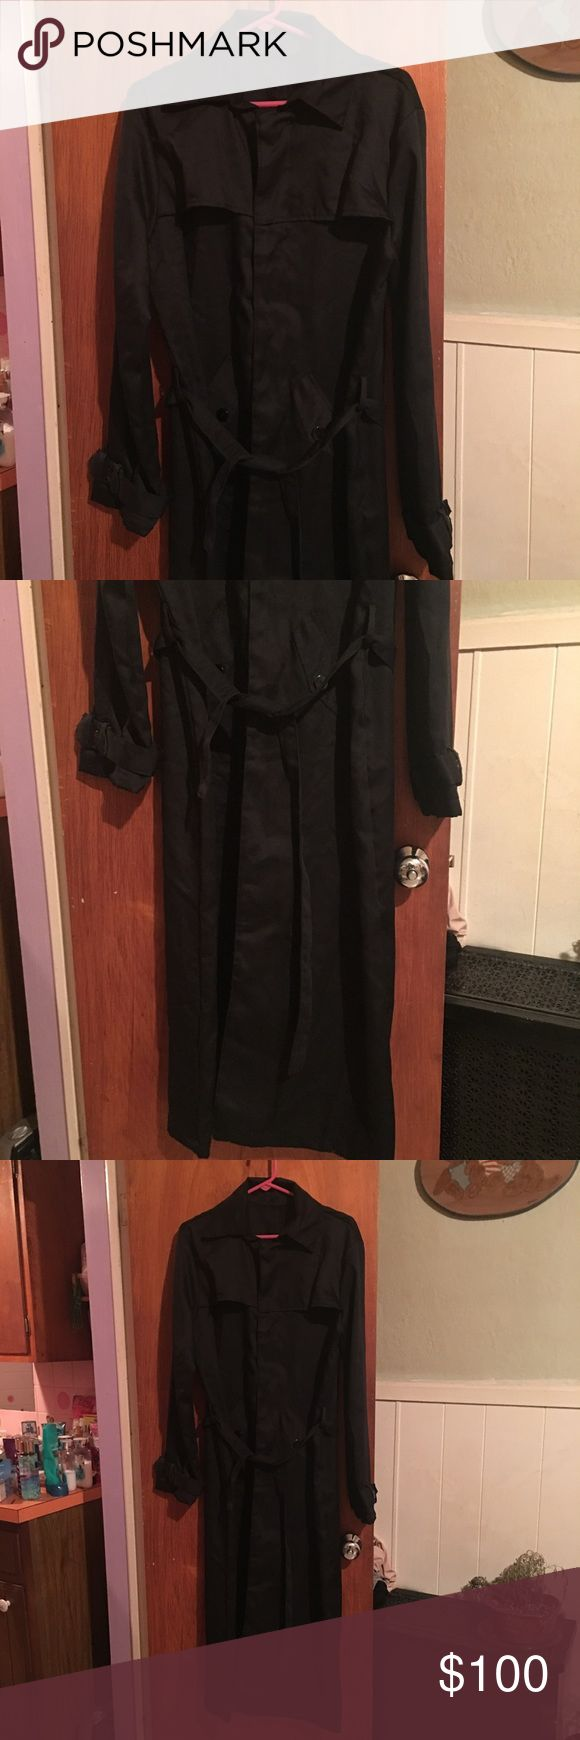 NWOT Black full length trench coat sz M/L Never worn, ive had this for a few years & it's been hanging in my closet. I love it but time to make room for stuff I actually wear lol.. Black full length trench coat, no size tag plz refer to to measurements, it's either a M or L.  Brand is unknown. I got this online I can't even remember the name of the website. It was a gothic/punk store. This is lightweight, it has snaps down the front, and relies in front. Pit-pit 21 inches, pit to bottom 40…